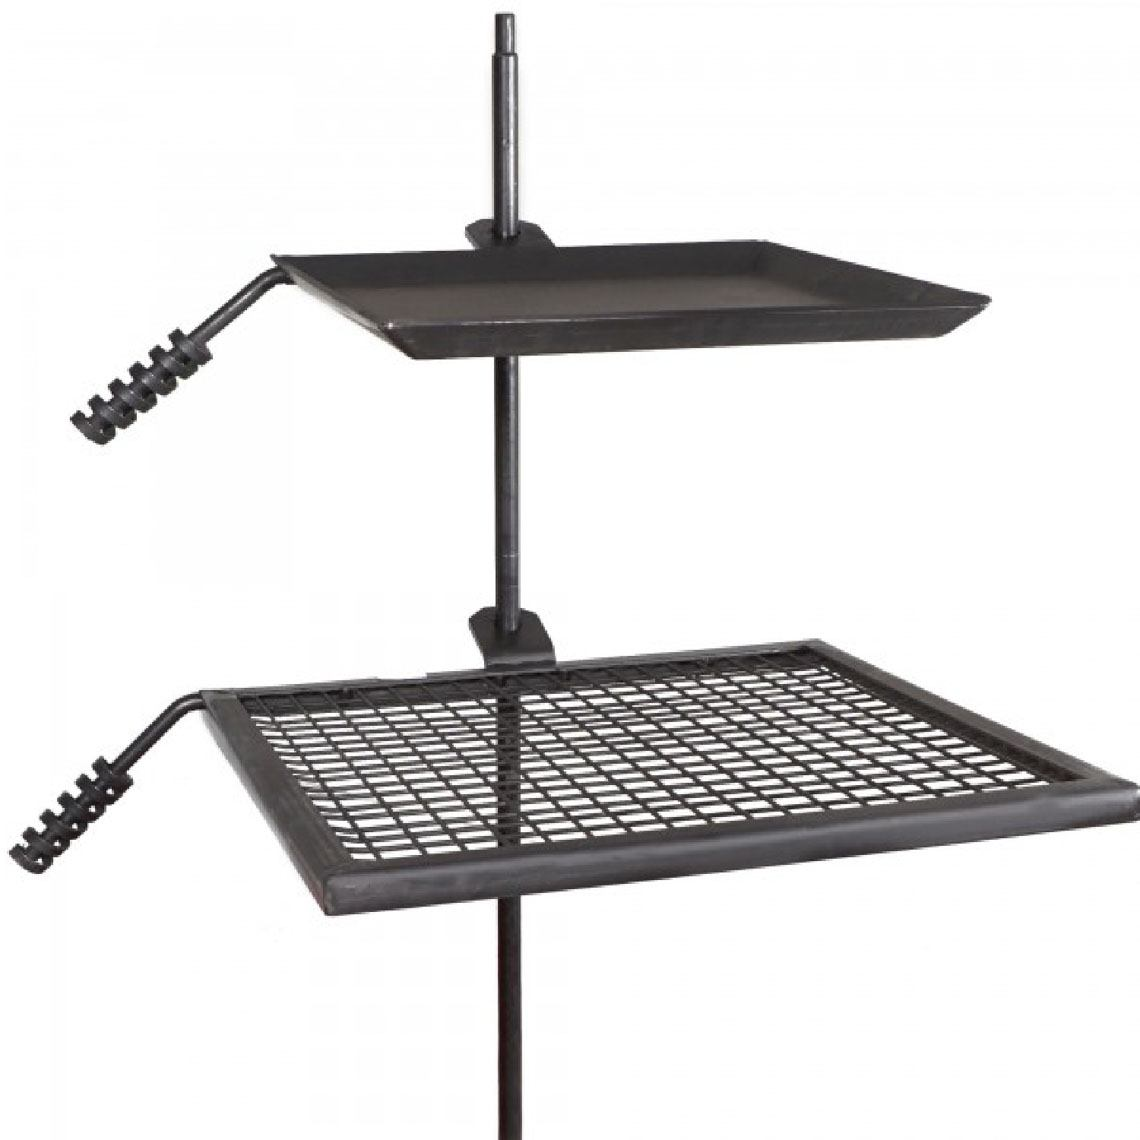 Customer Favorite Adjustable Campfire Swivel Grill Fire Pit Cooking Grate Griddle Plate Bbq Accuweather Shop